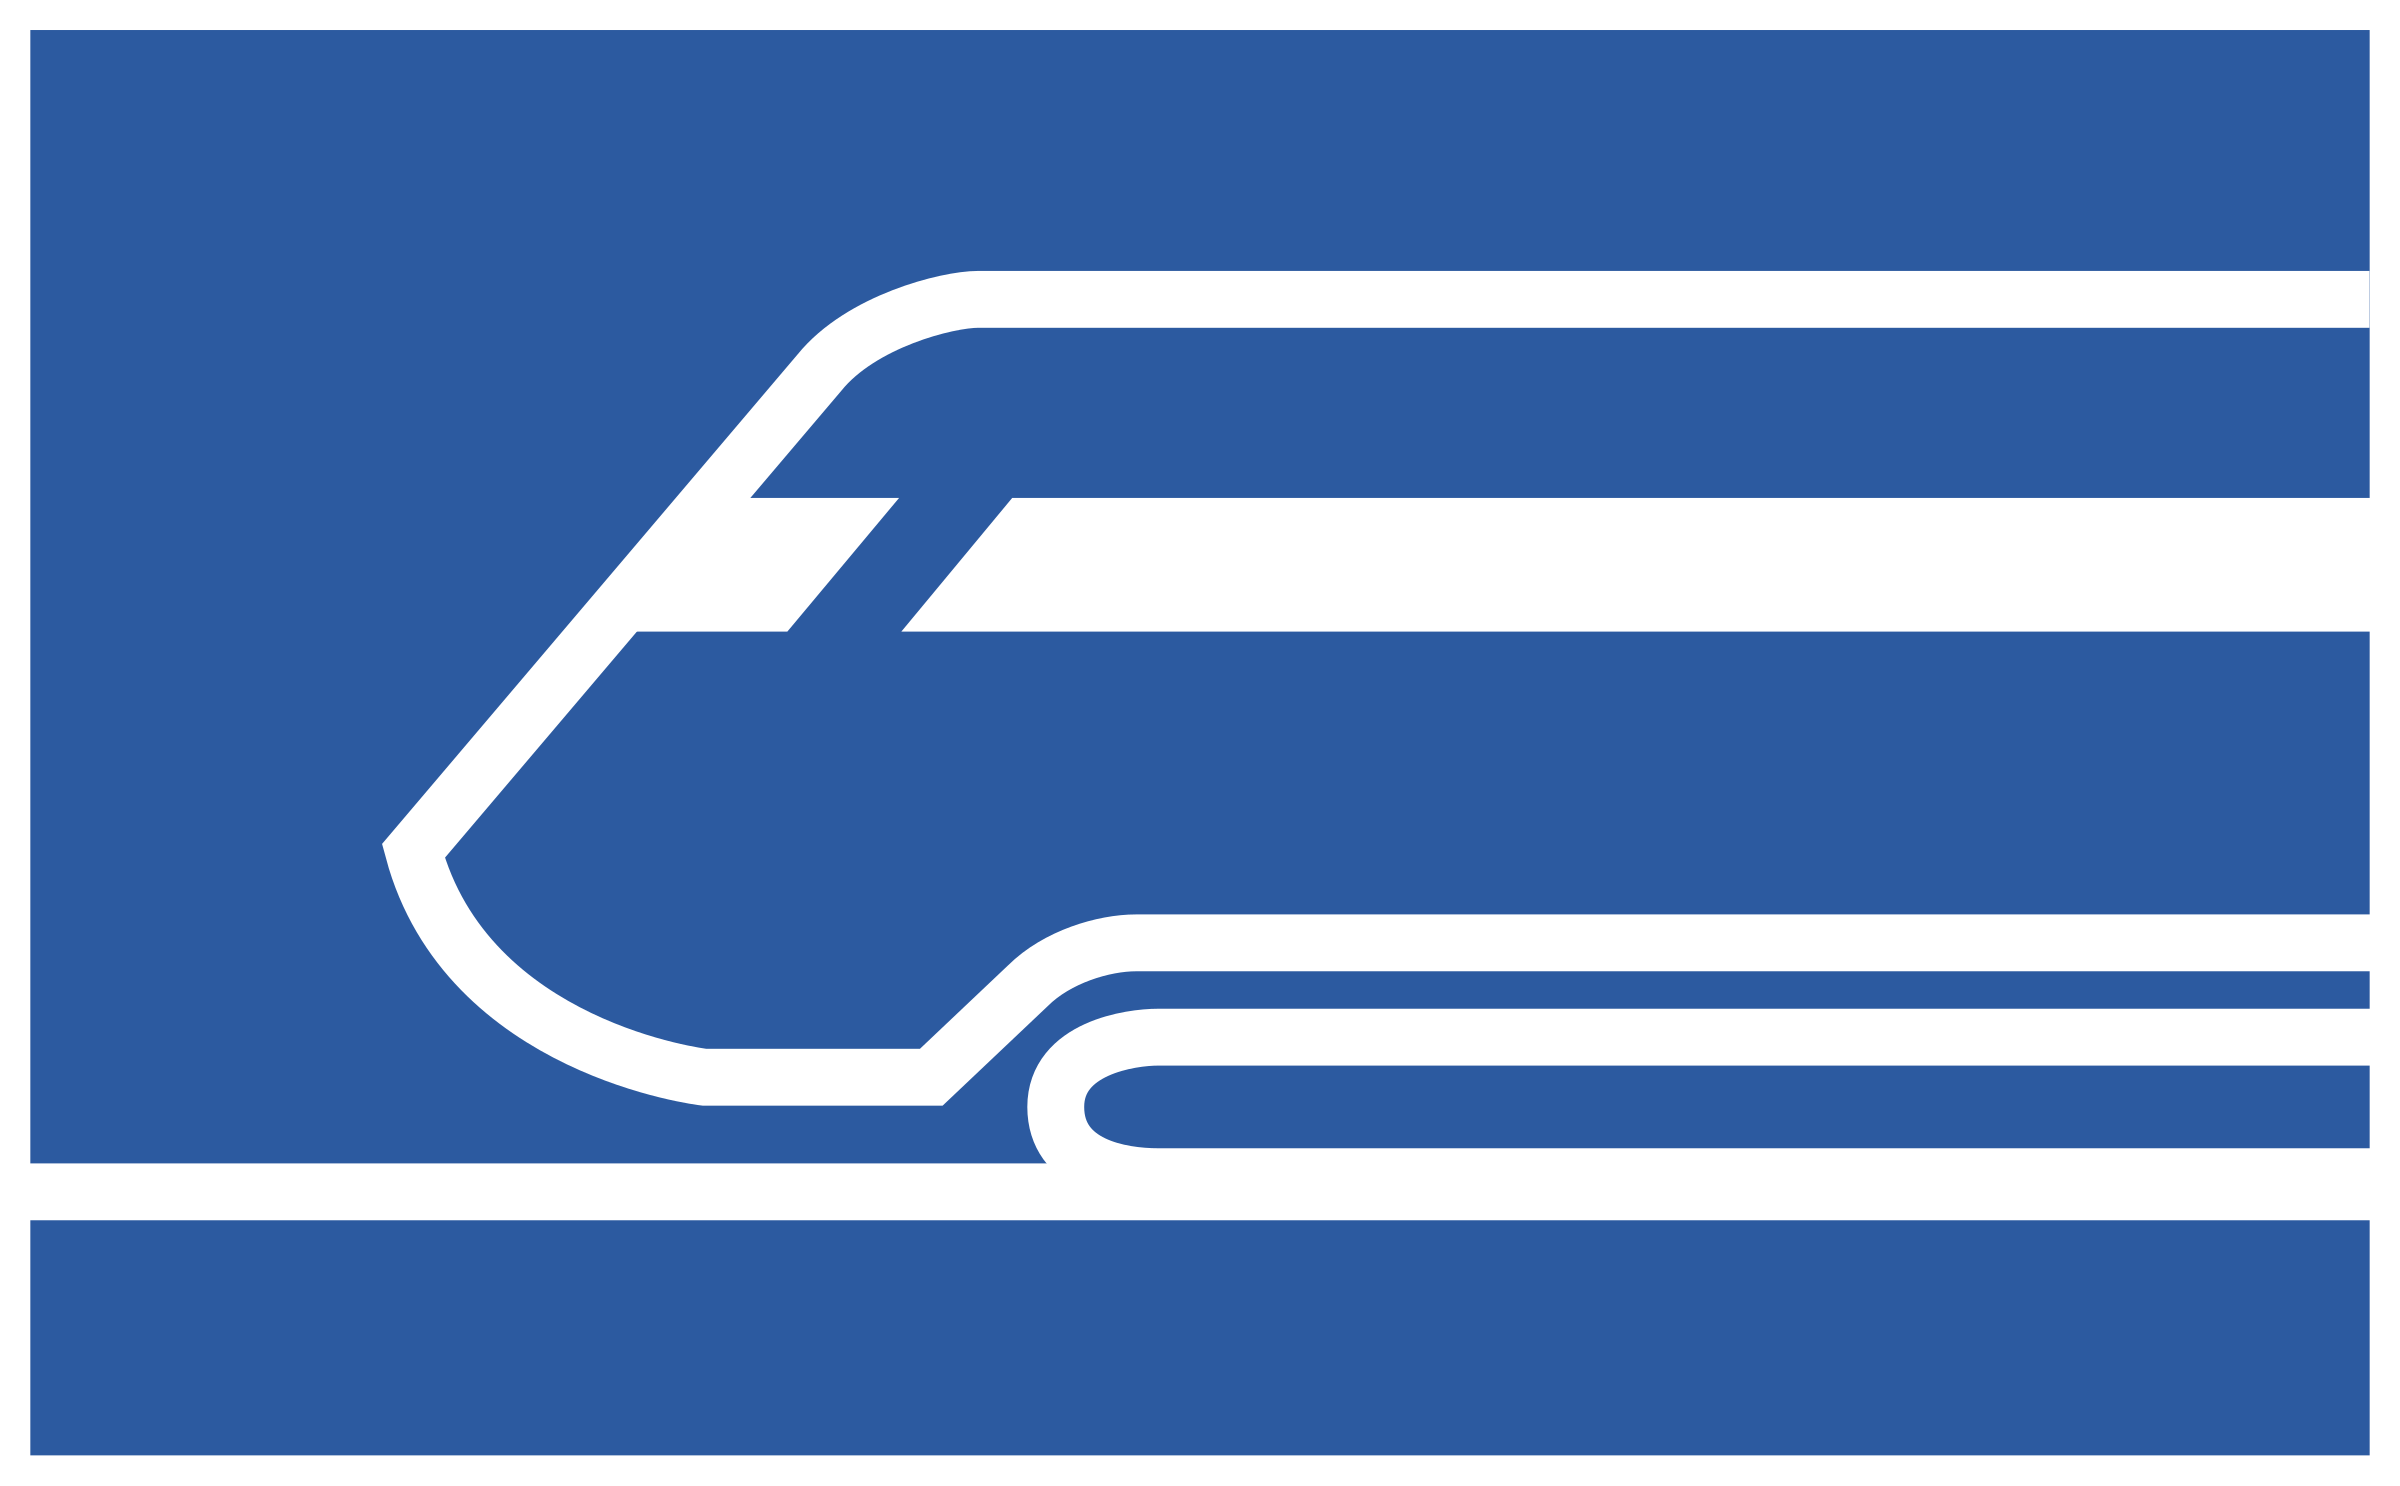 train logo by GMcGlinn